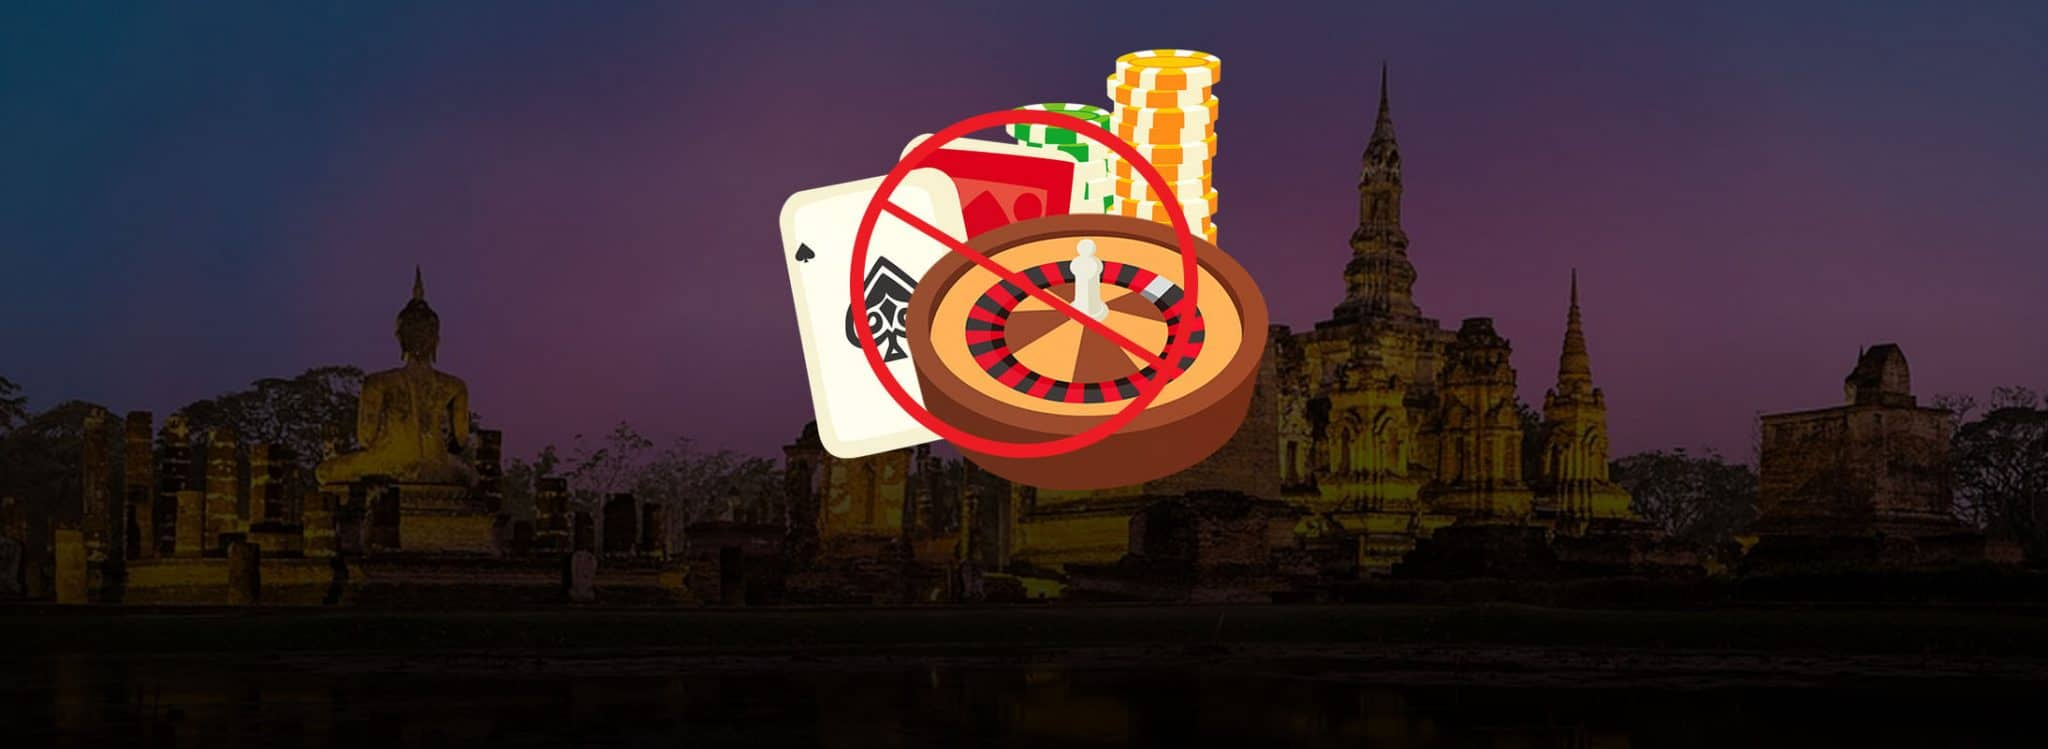 Cambodia Set To Ban Online Gambling In 2020